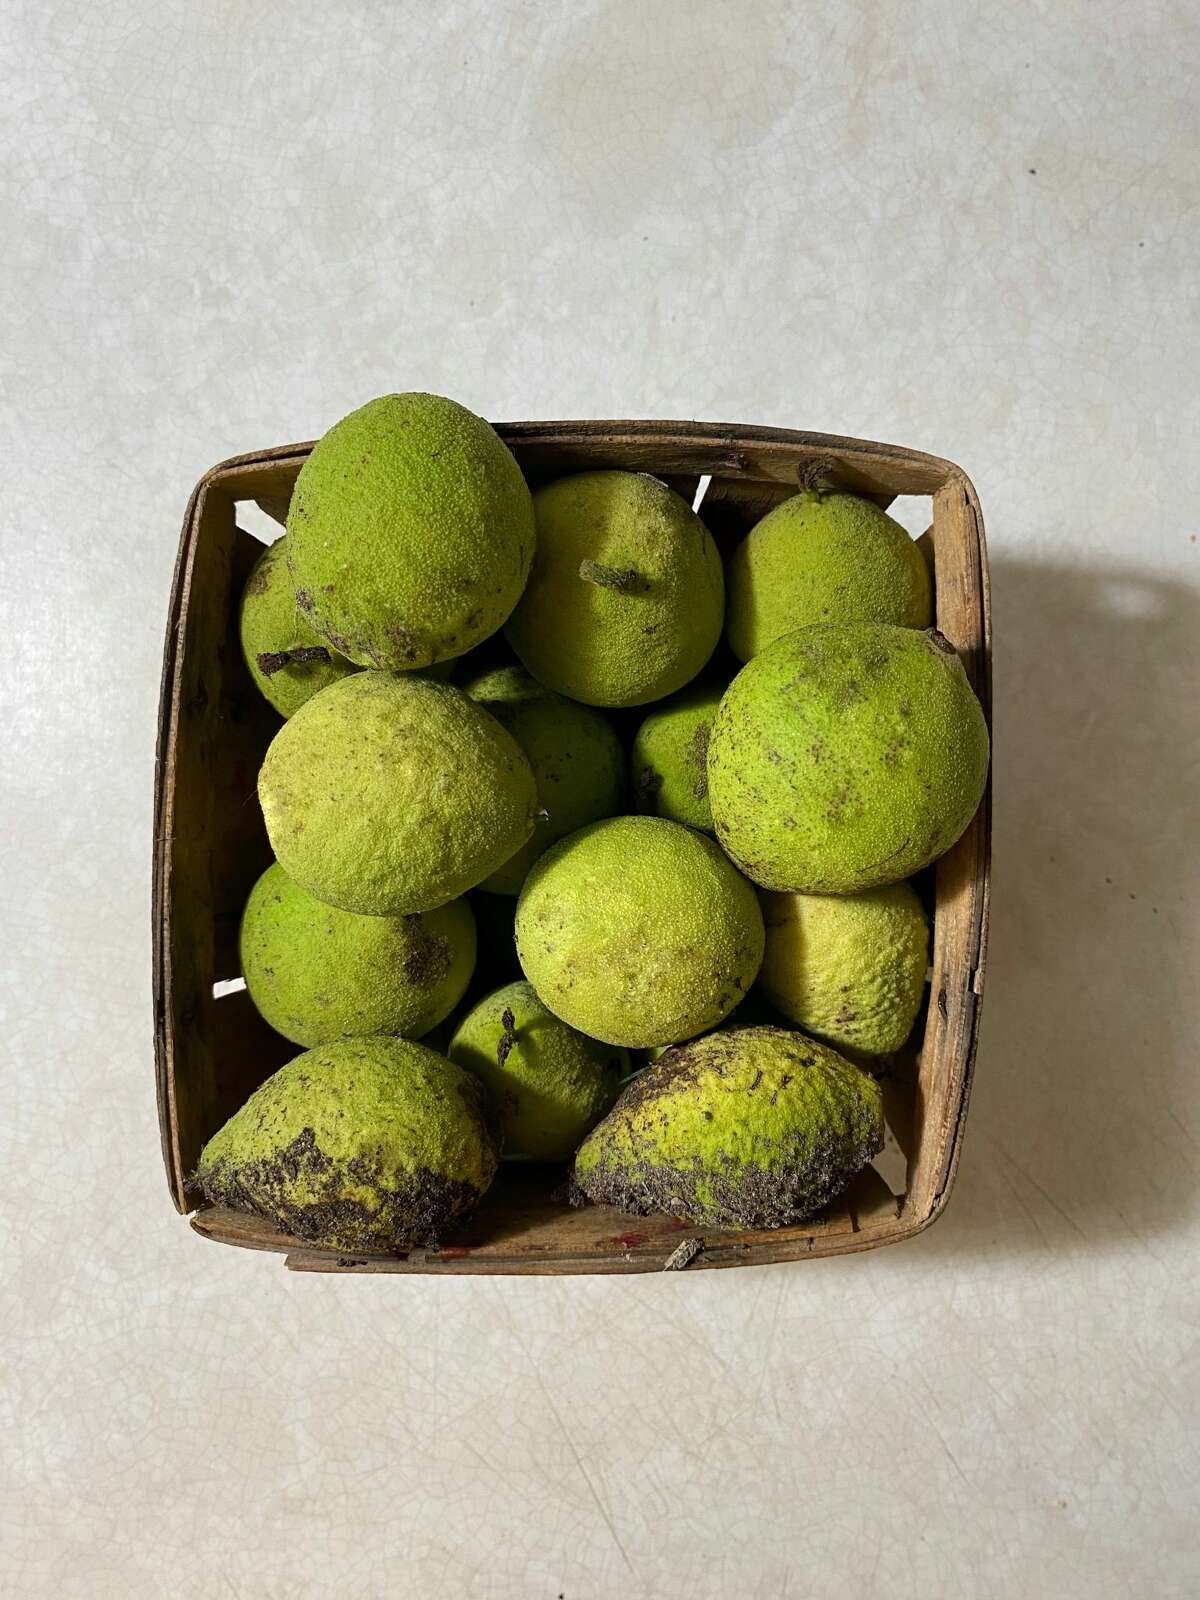 A collection of black walnuts from Stephanie Gravalese's yard.